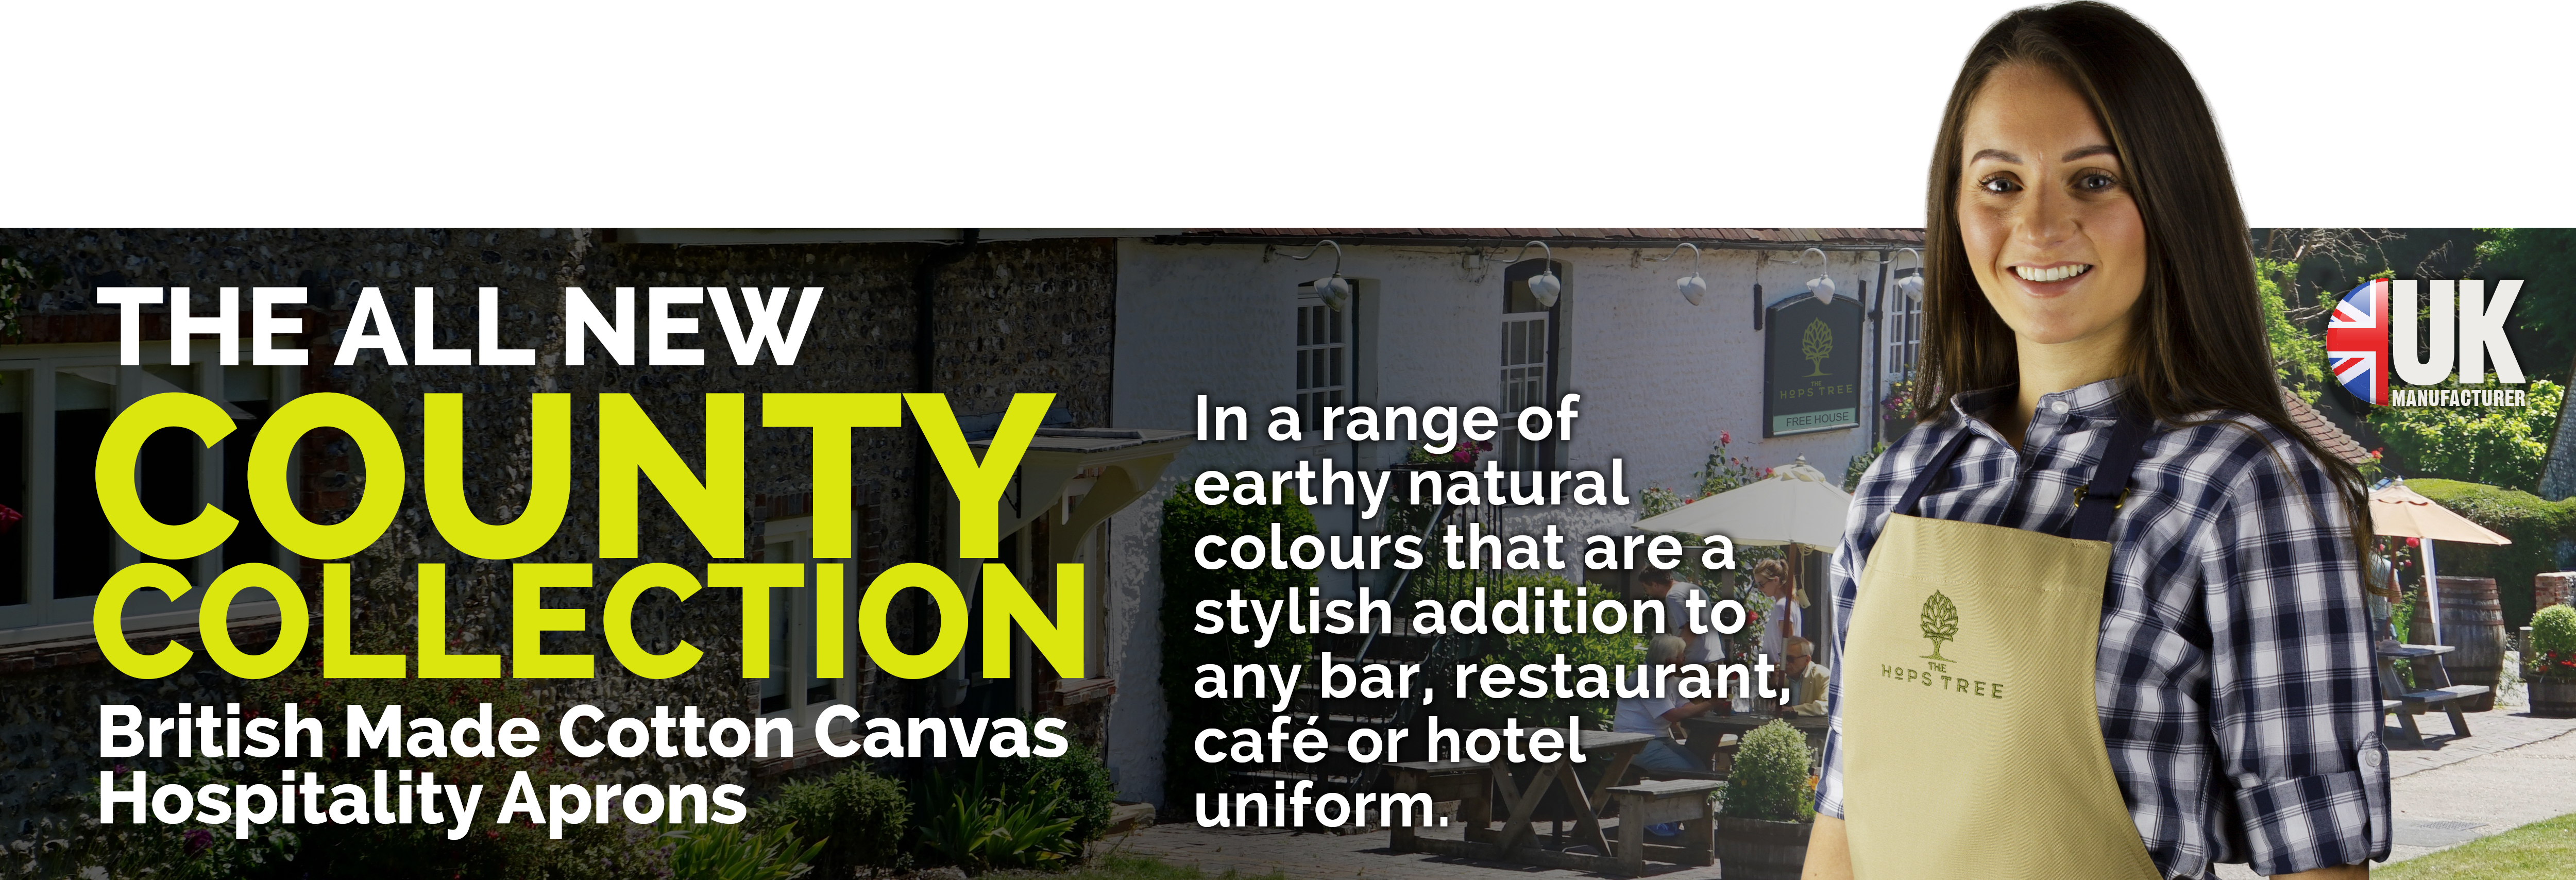 County Collection - British Made Cotton Canvas Aprons